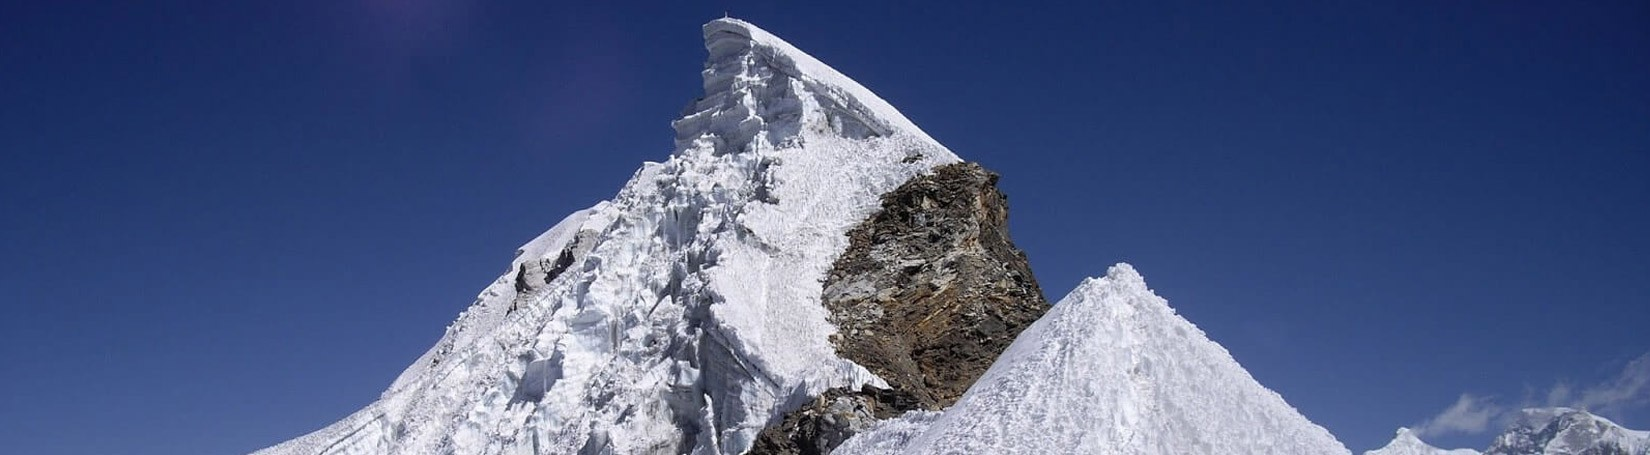 Summit of Lobuche Peak